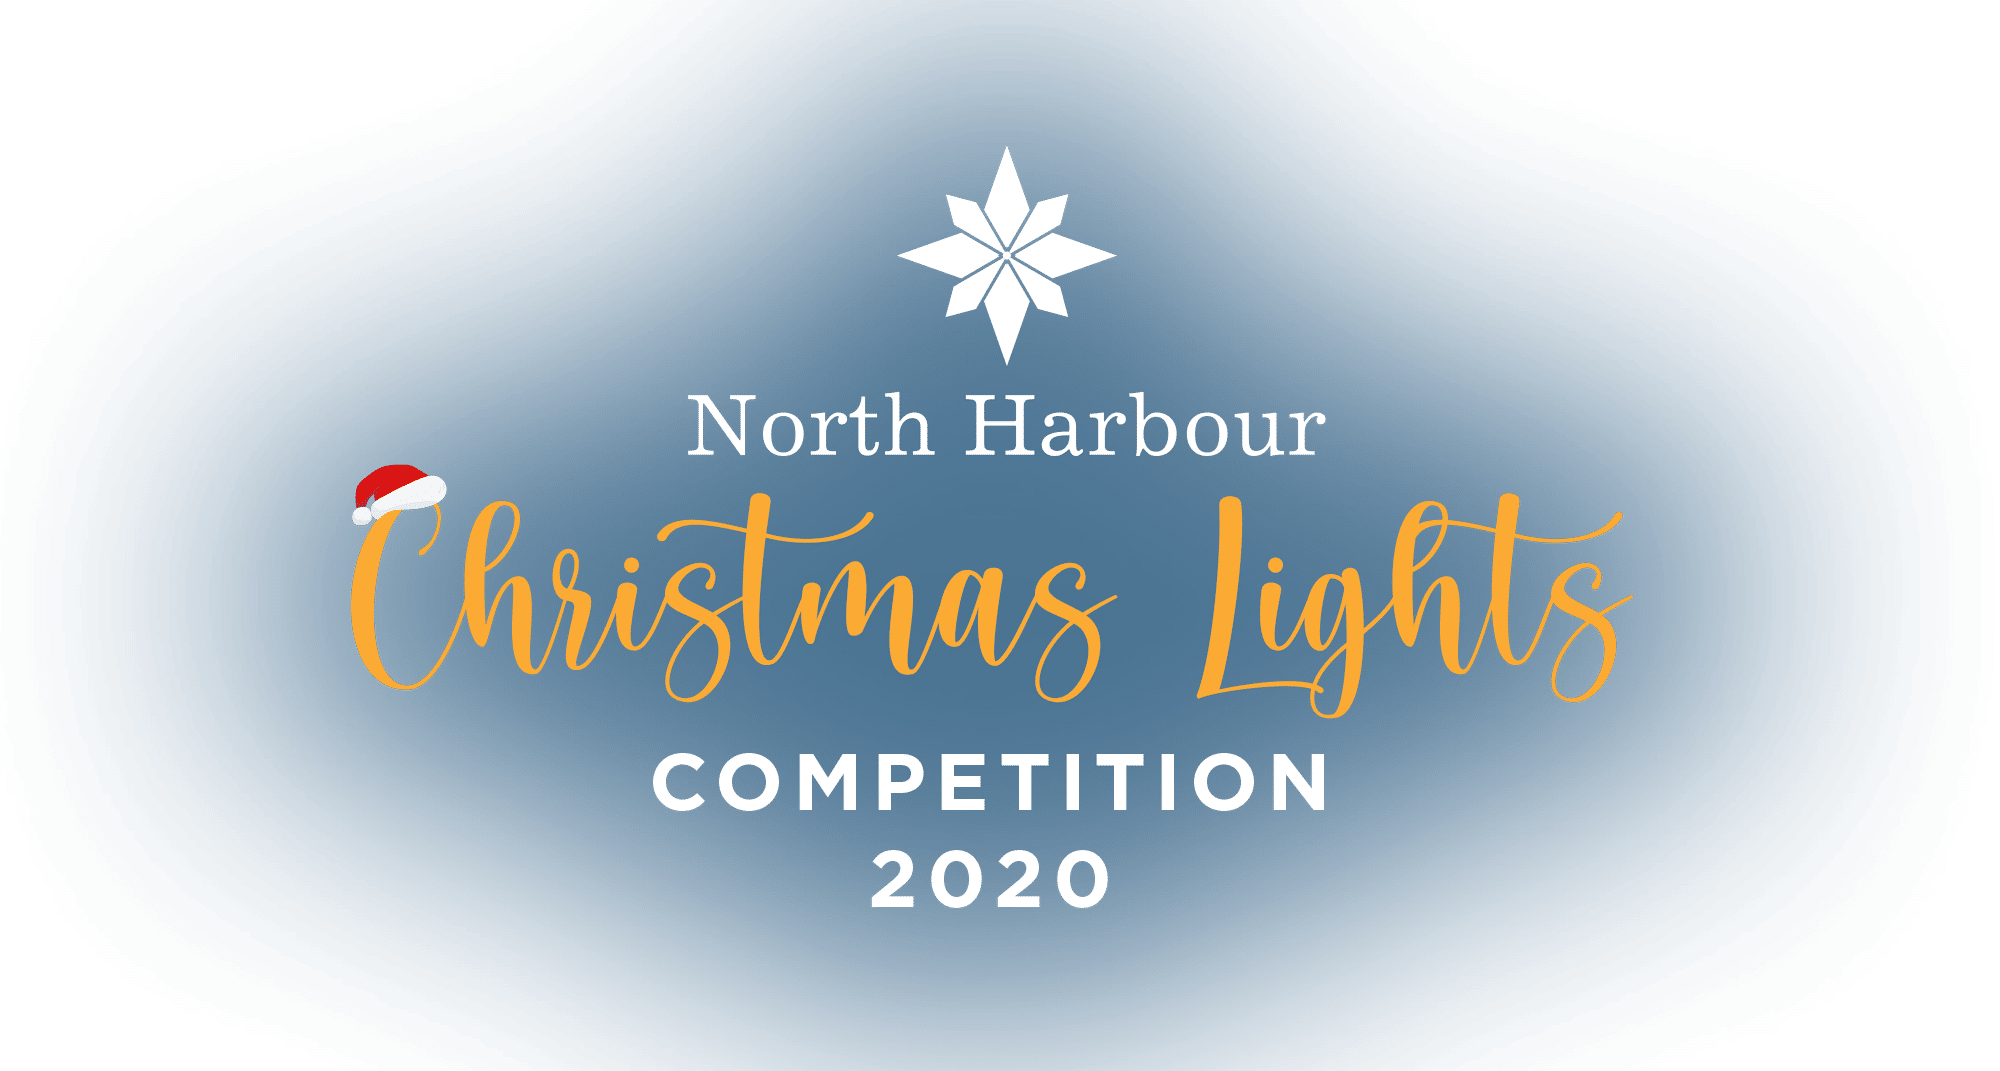 North Harbour Christmas Lights Competition 2020